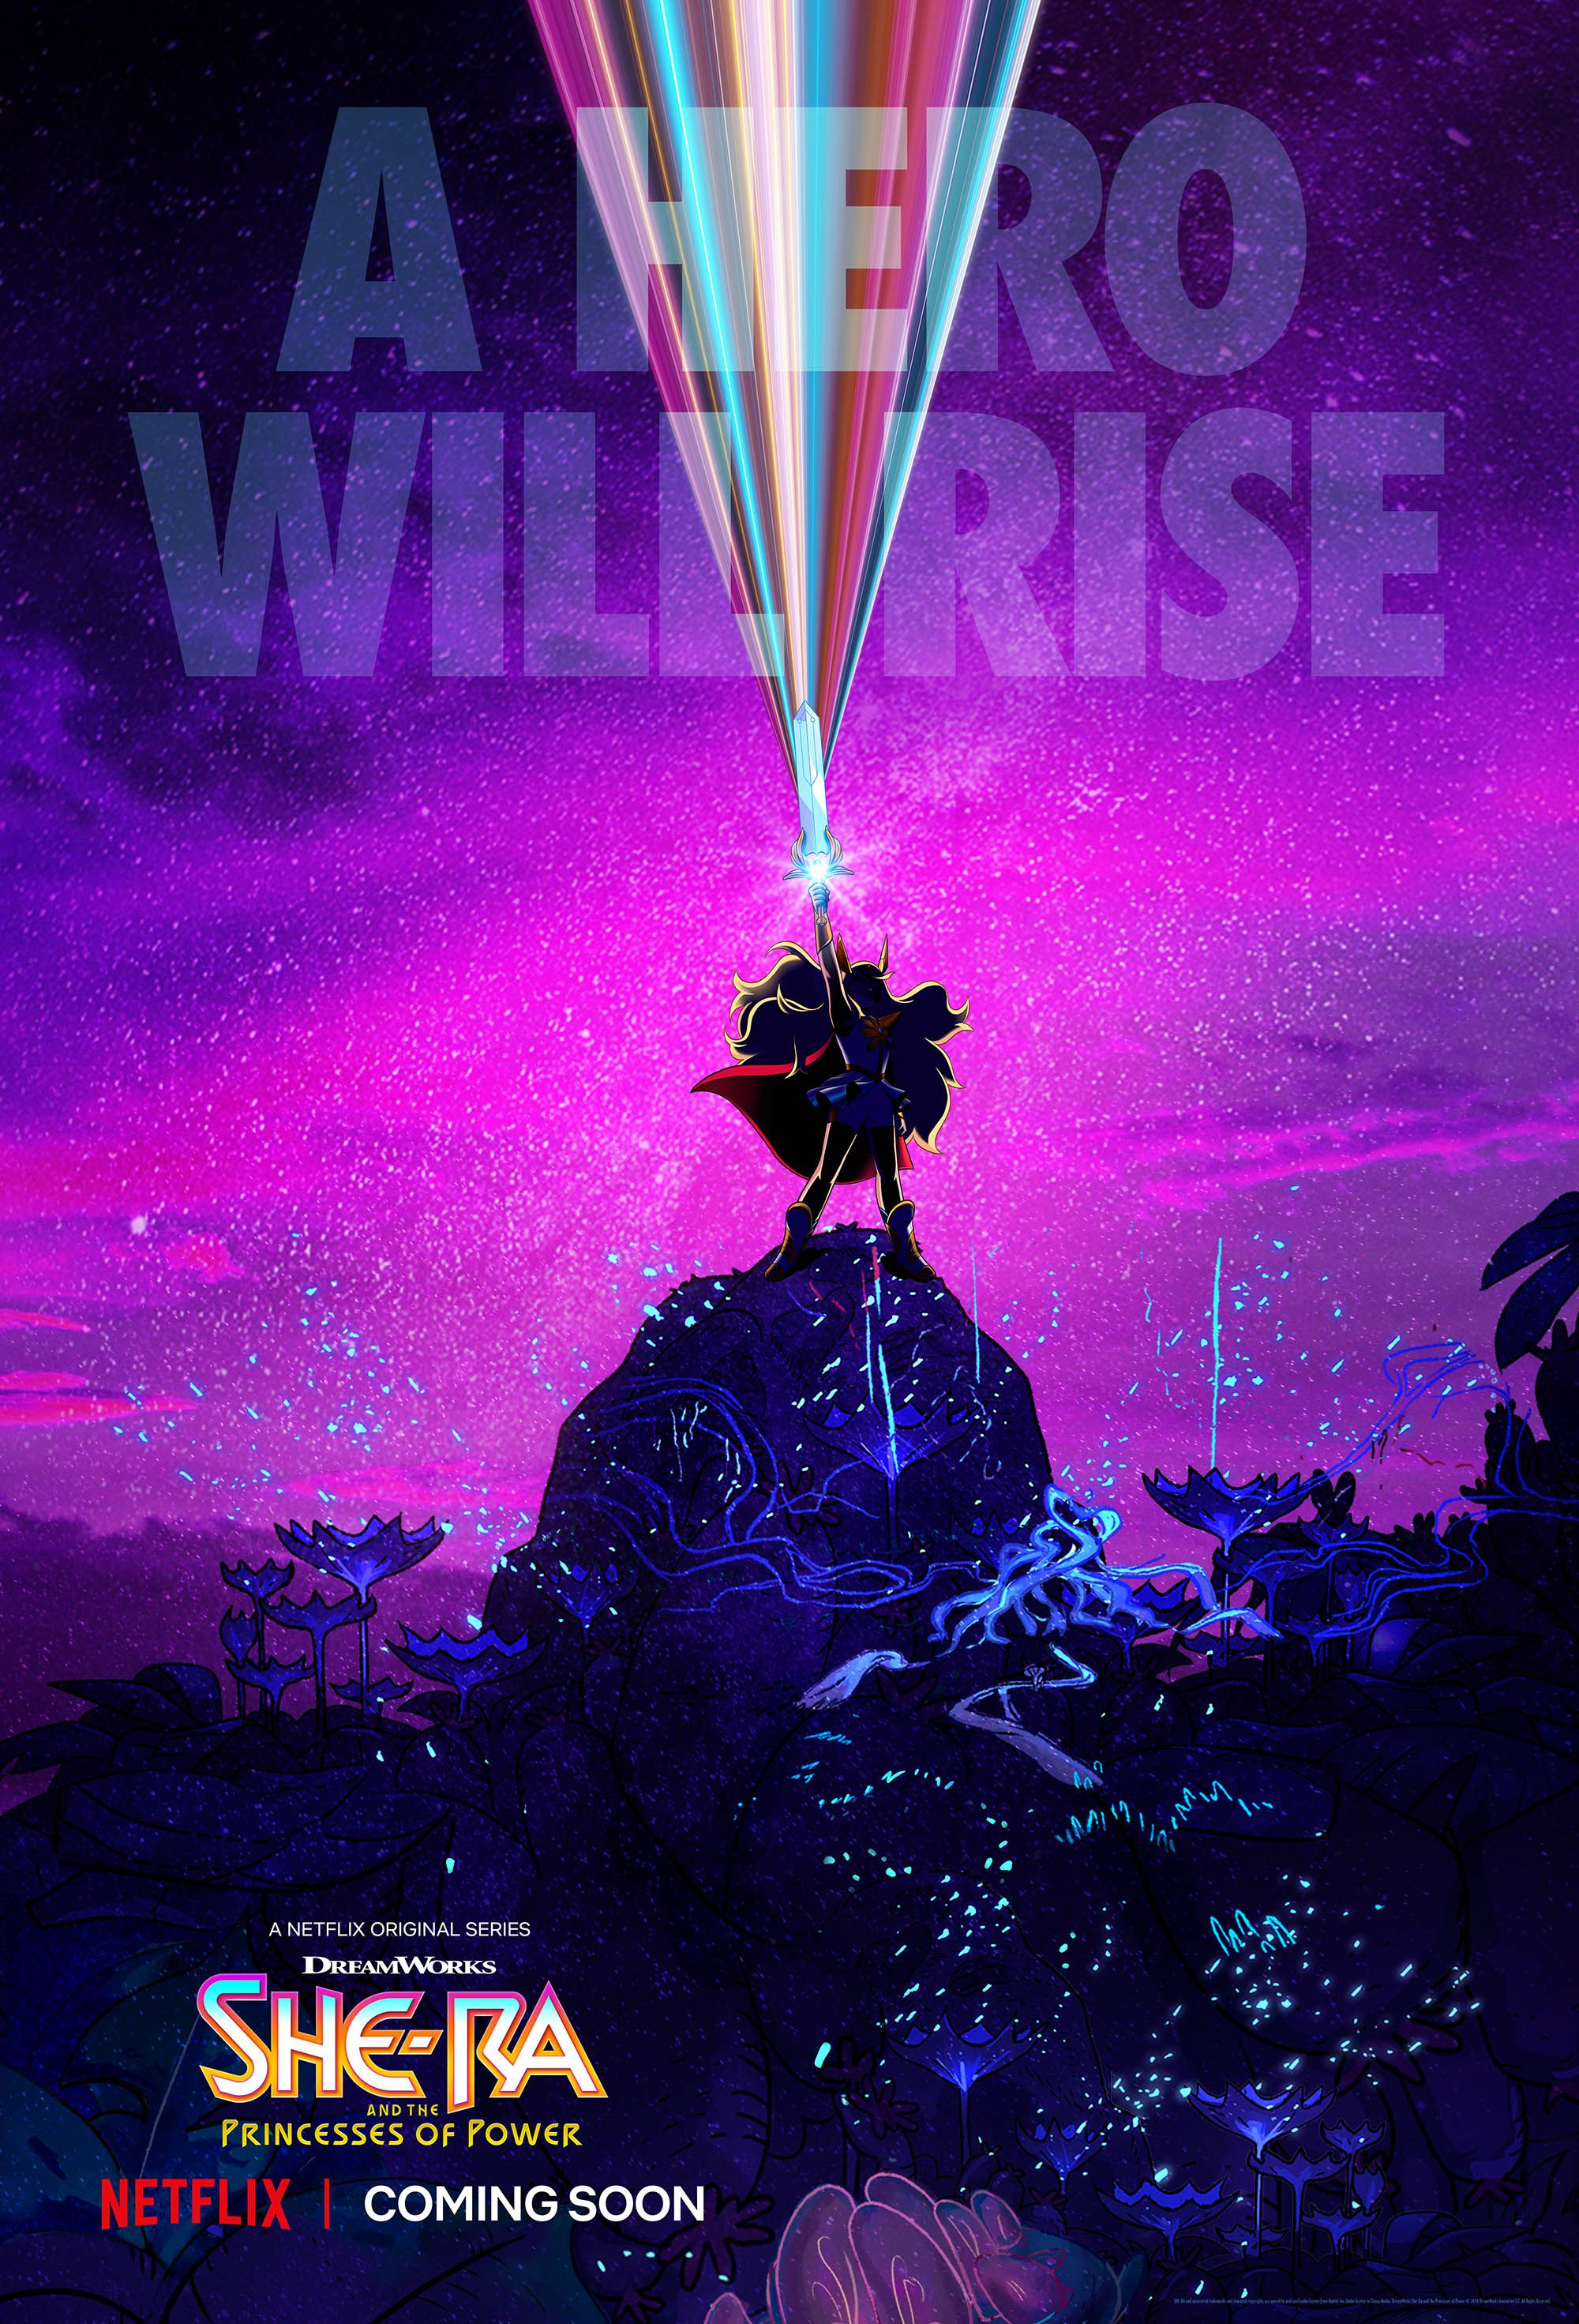 Netflix's She-Ra Series Cast and First-Look Image Revealed